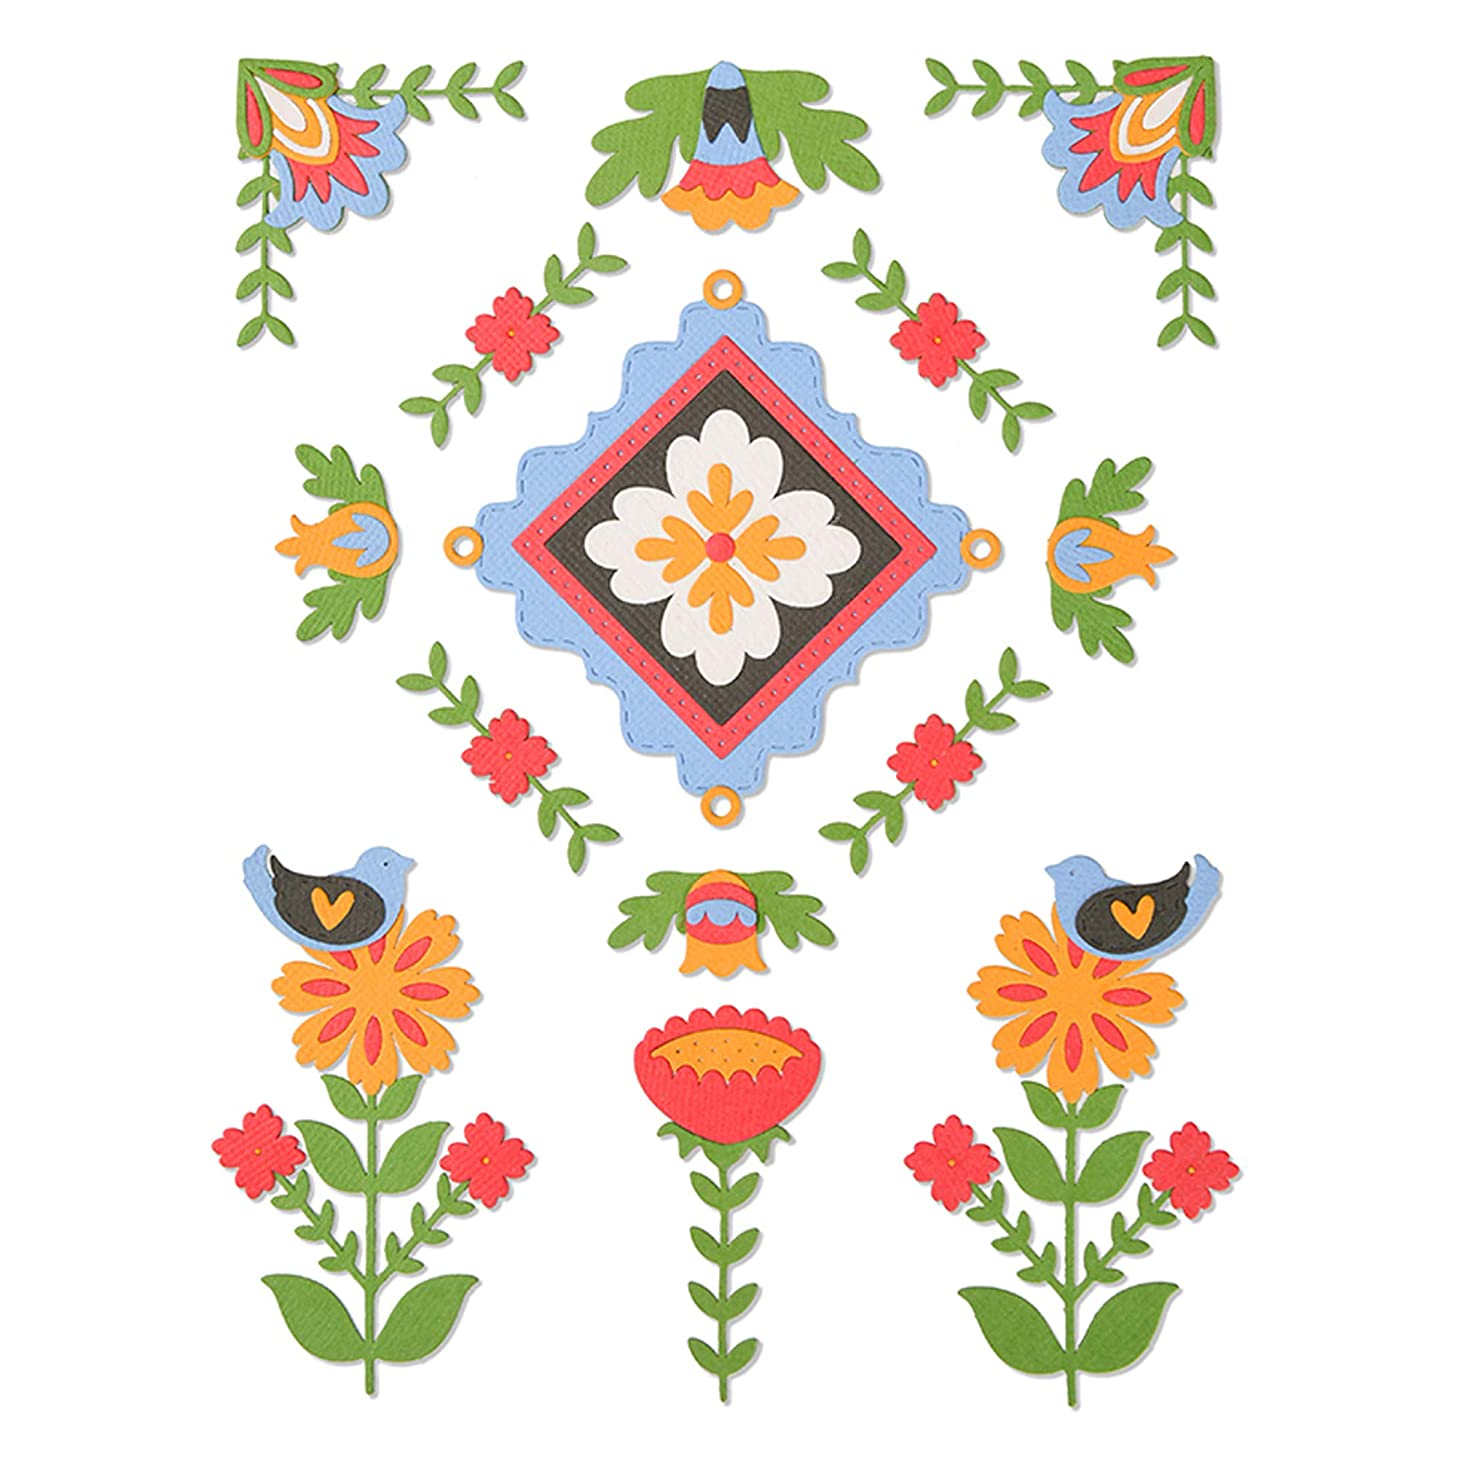 Sizzix 663607 Folk Art Elements by Courtney Chilson Dies, us:one Size, Multicolor